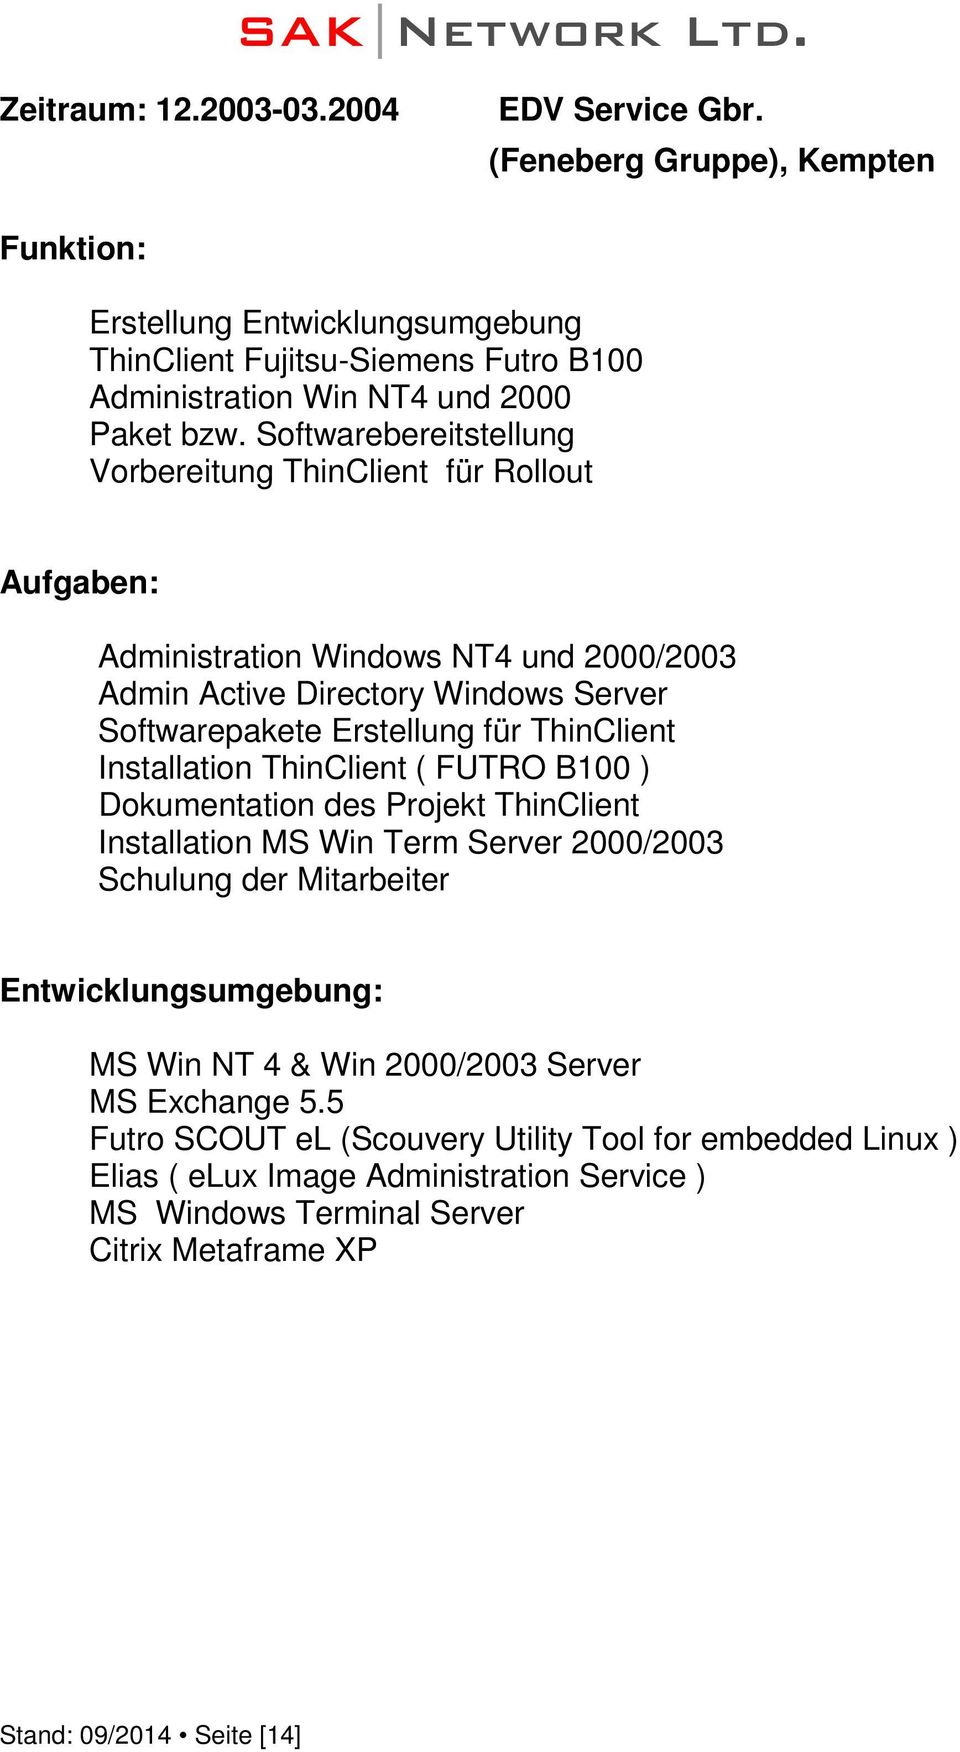 Installation ThinClient ( FUTRO B100 ) Dokumentation des Projekt ThinClient Installation MS Win Term Server 2000/2003 Schulung der Mitarbeiter MS Win NT 4 & Win 2000/2003 Server MS